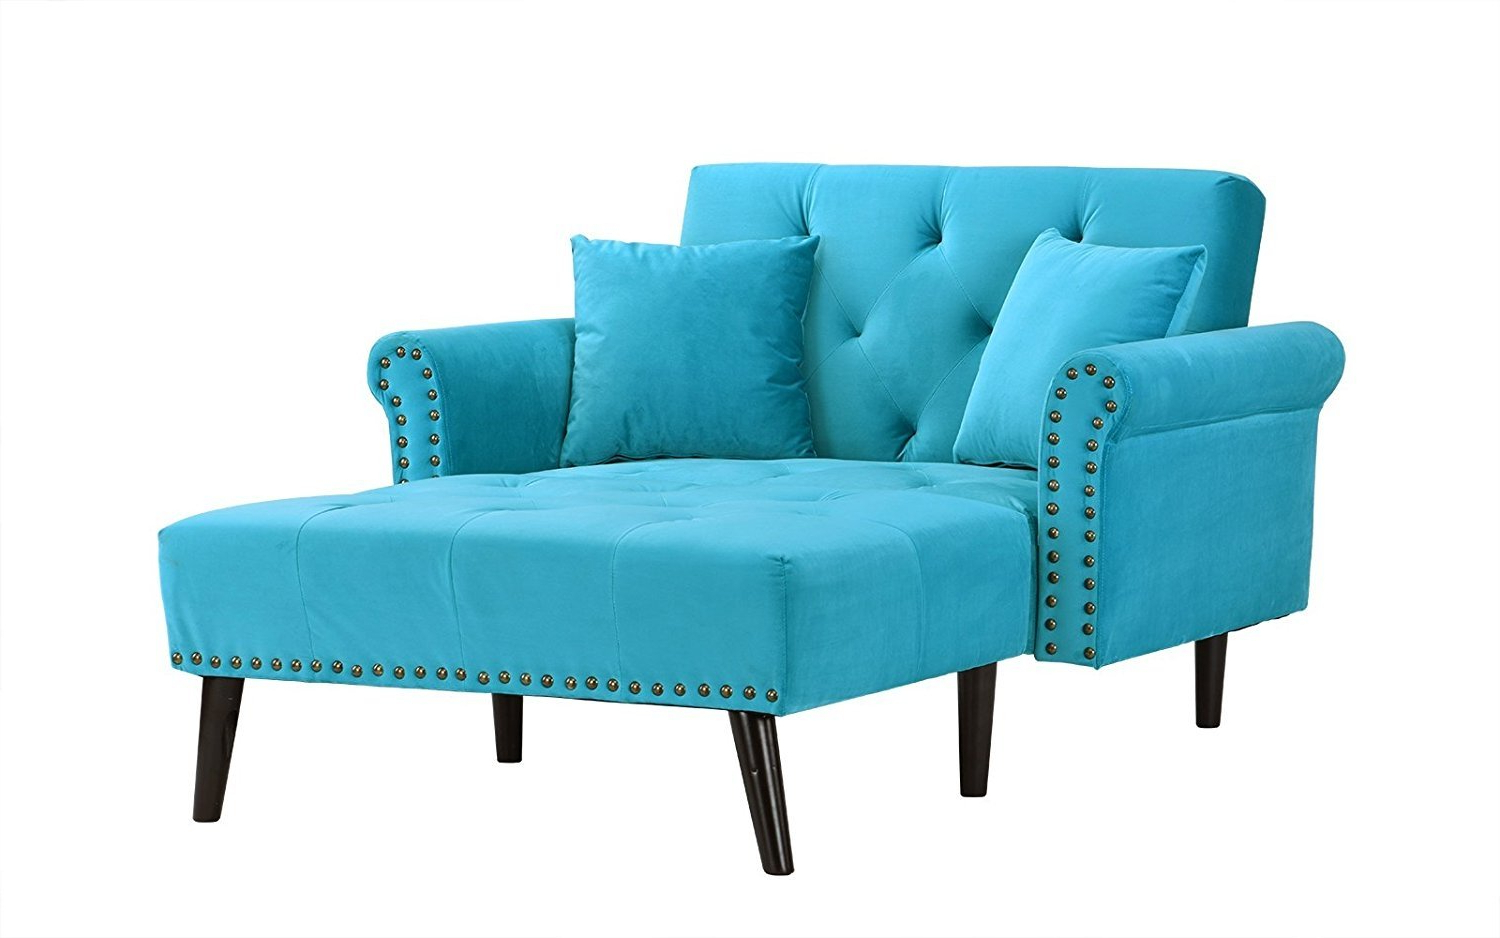 Modern Velvet Reclining Chaise Lounge W/ Nailhead/Tufted Throughout Best And Newest Dulce Mid Century Chaise Sofas Dark Blue (View 10 of 25)